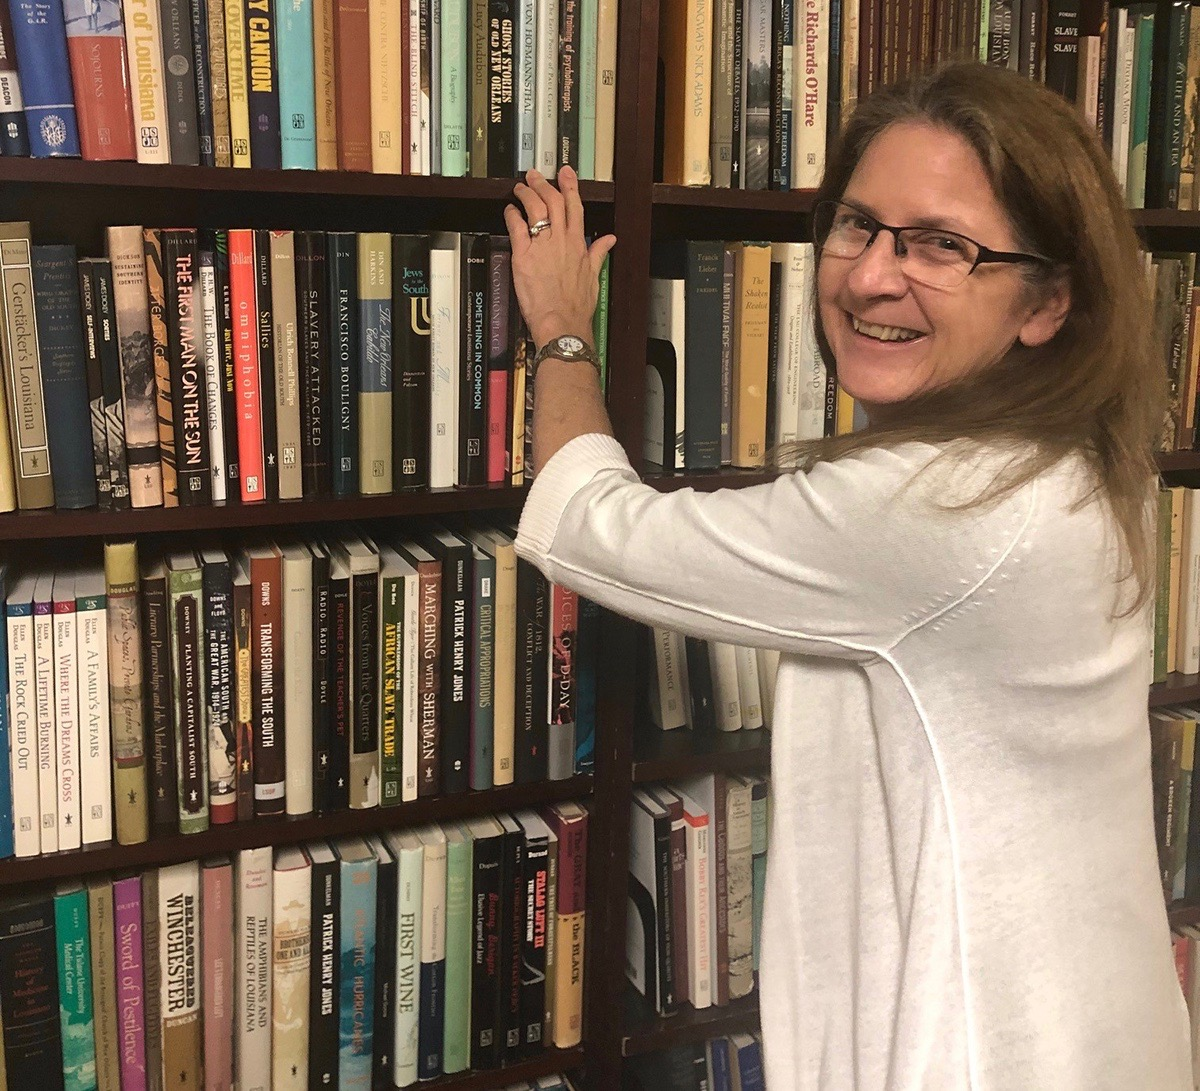 Laura Gleason, production manager and associate director of LSU Press, in the LSU Press library; courtesy of LSU Press